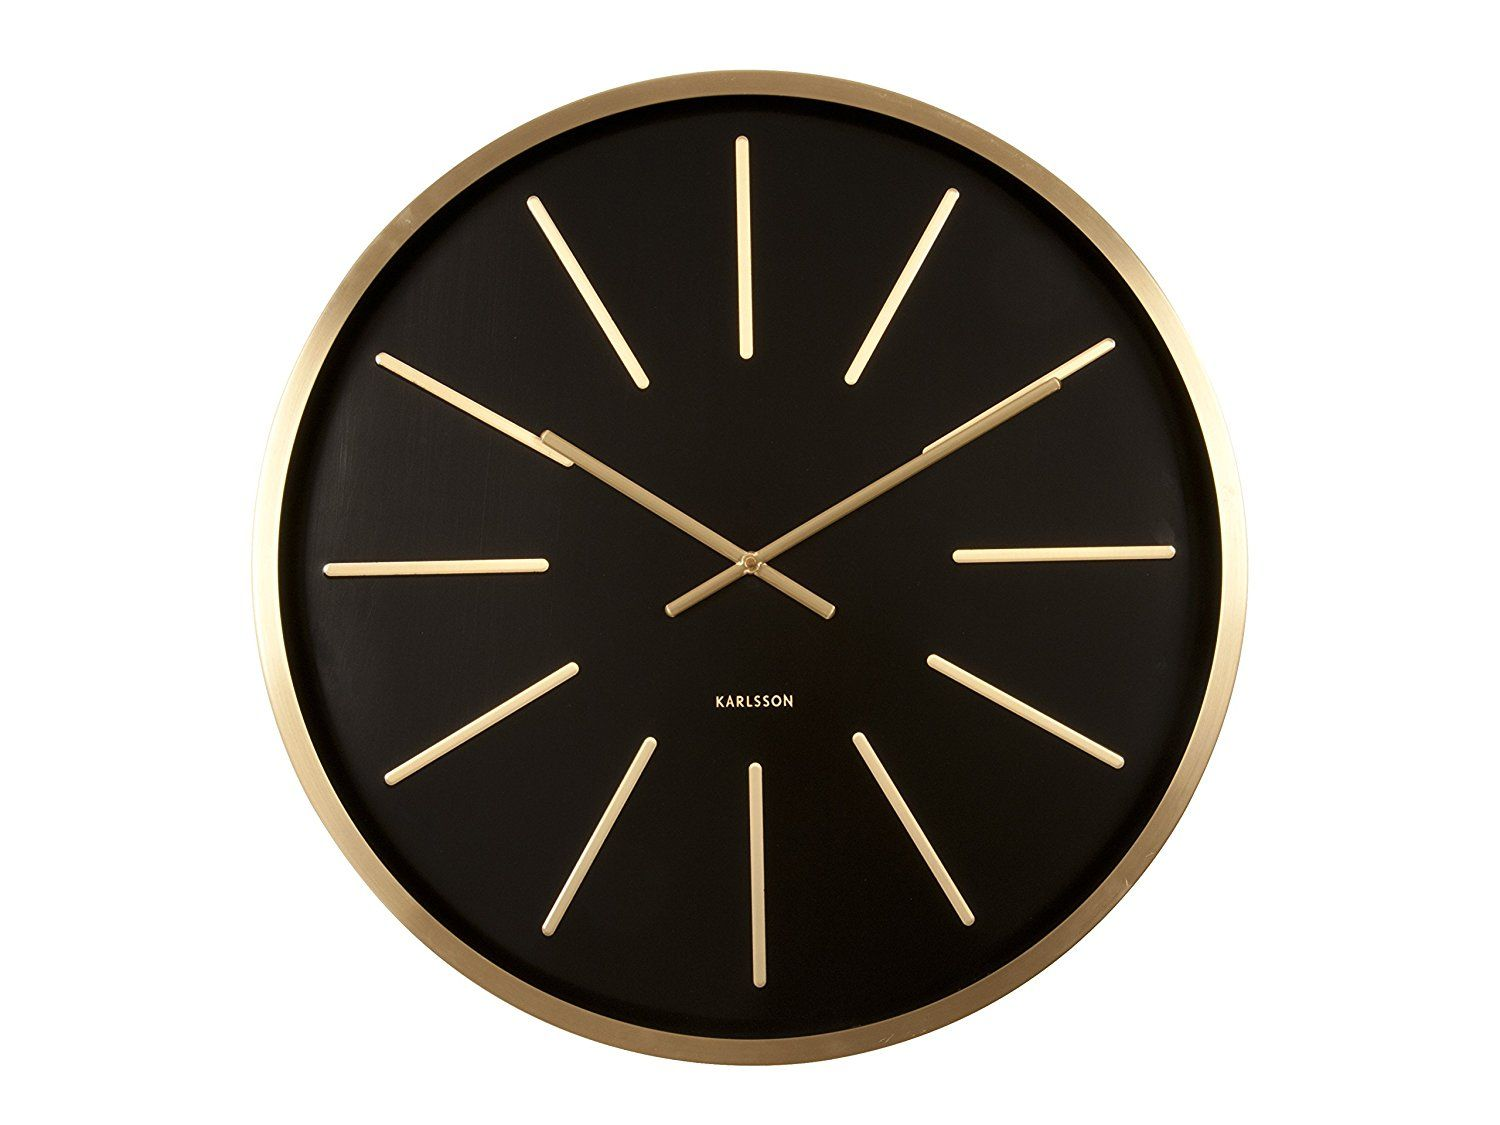 Karlsson Maxiemus Wall Clock Black Co Uk Kitchen Home